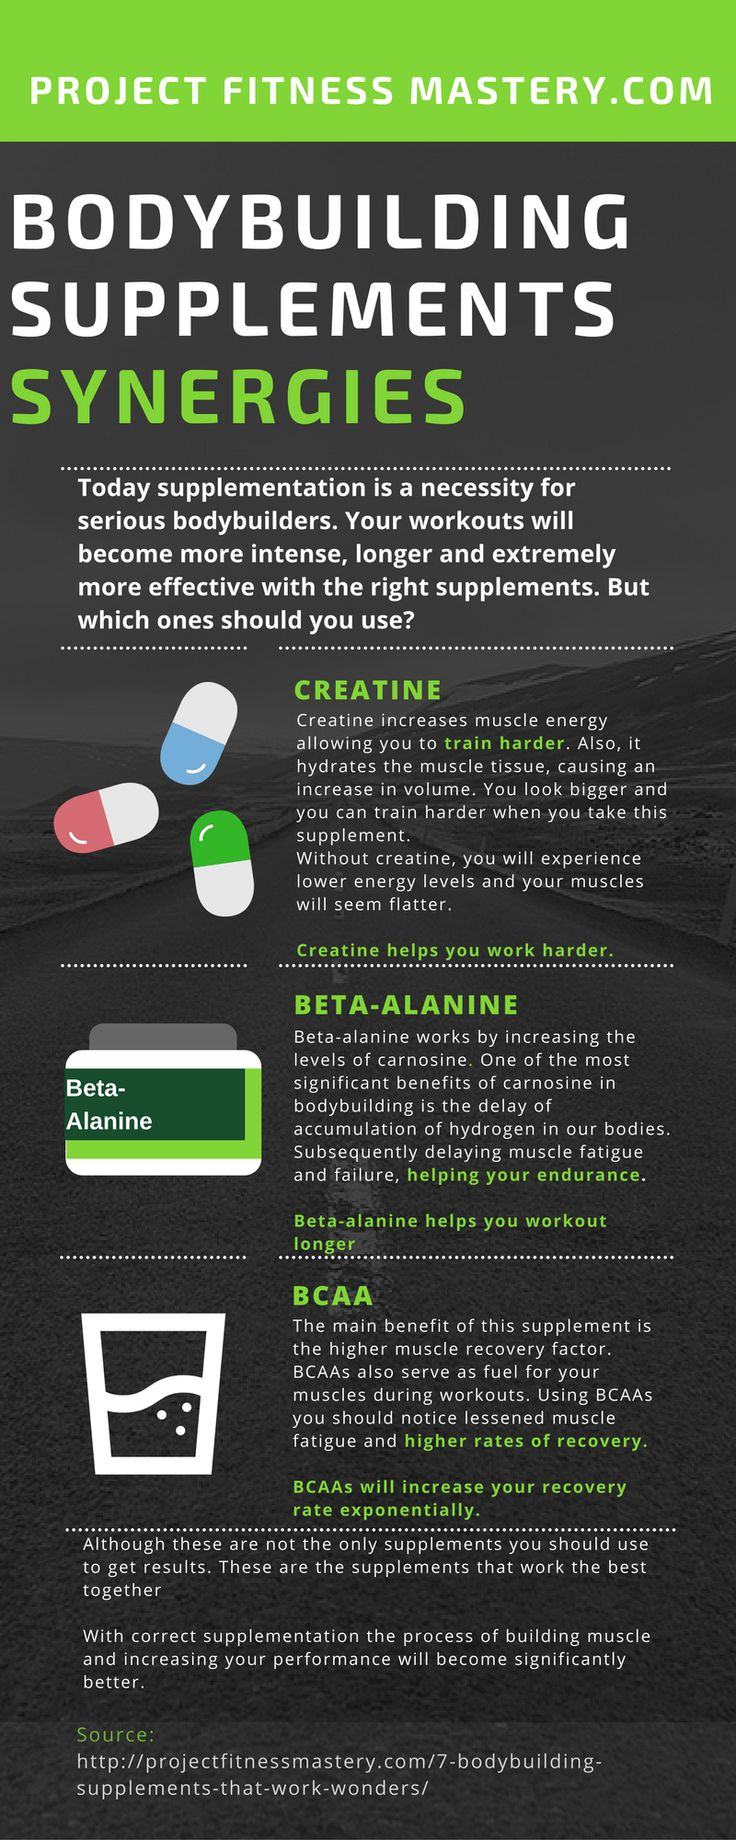 Discover the best synergies in the bodybuilding supplement world with this bodybuilding infographic. Share, like and follow!